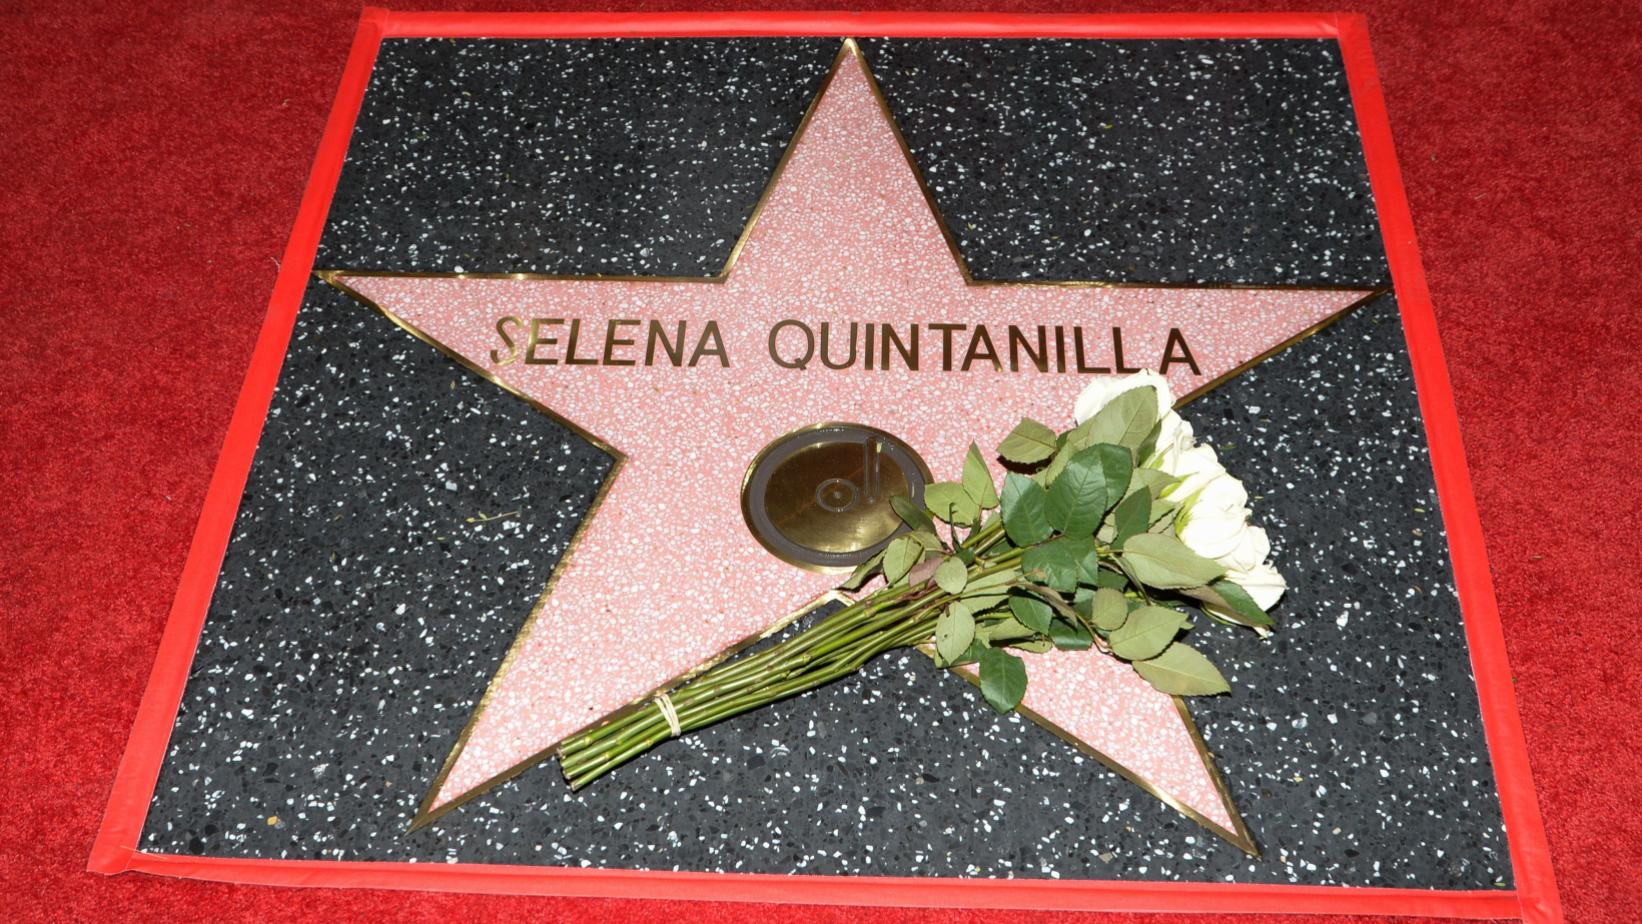 Selena Quintanilla's Hollywood Walk Of Fame star